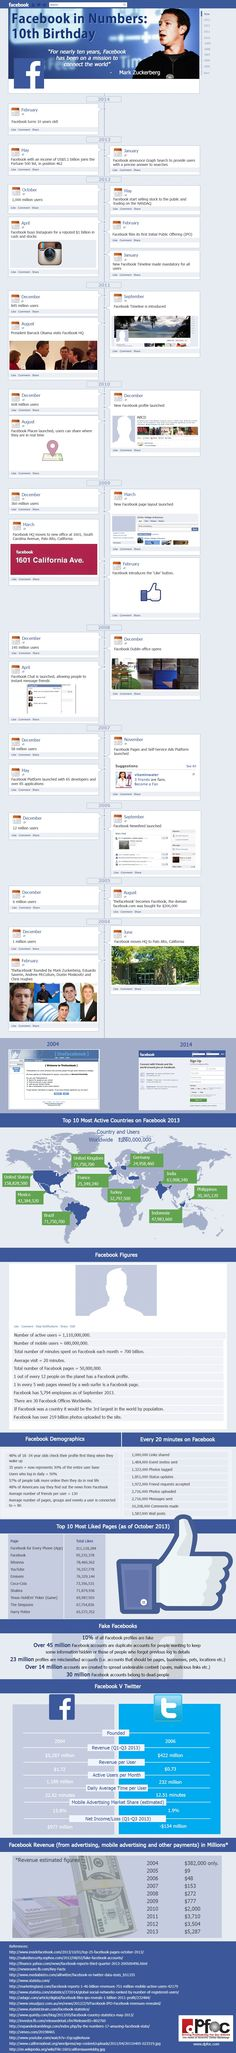 Infographic: 10 years of Facebook - Inside Facebook